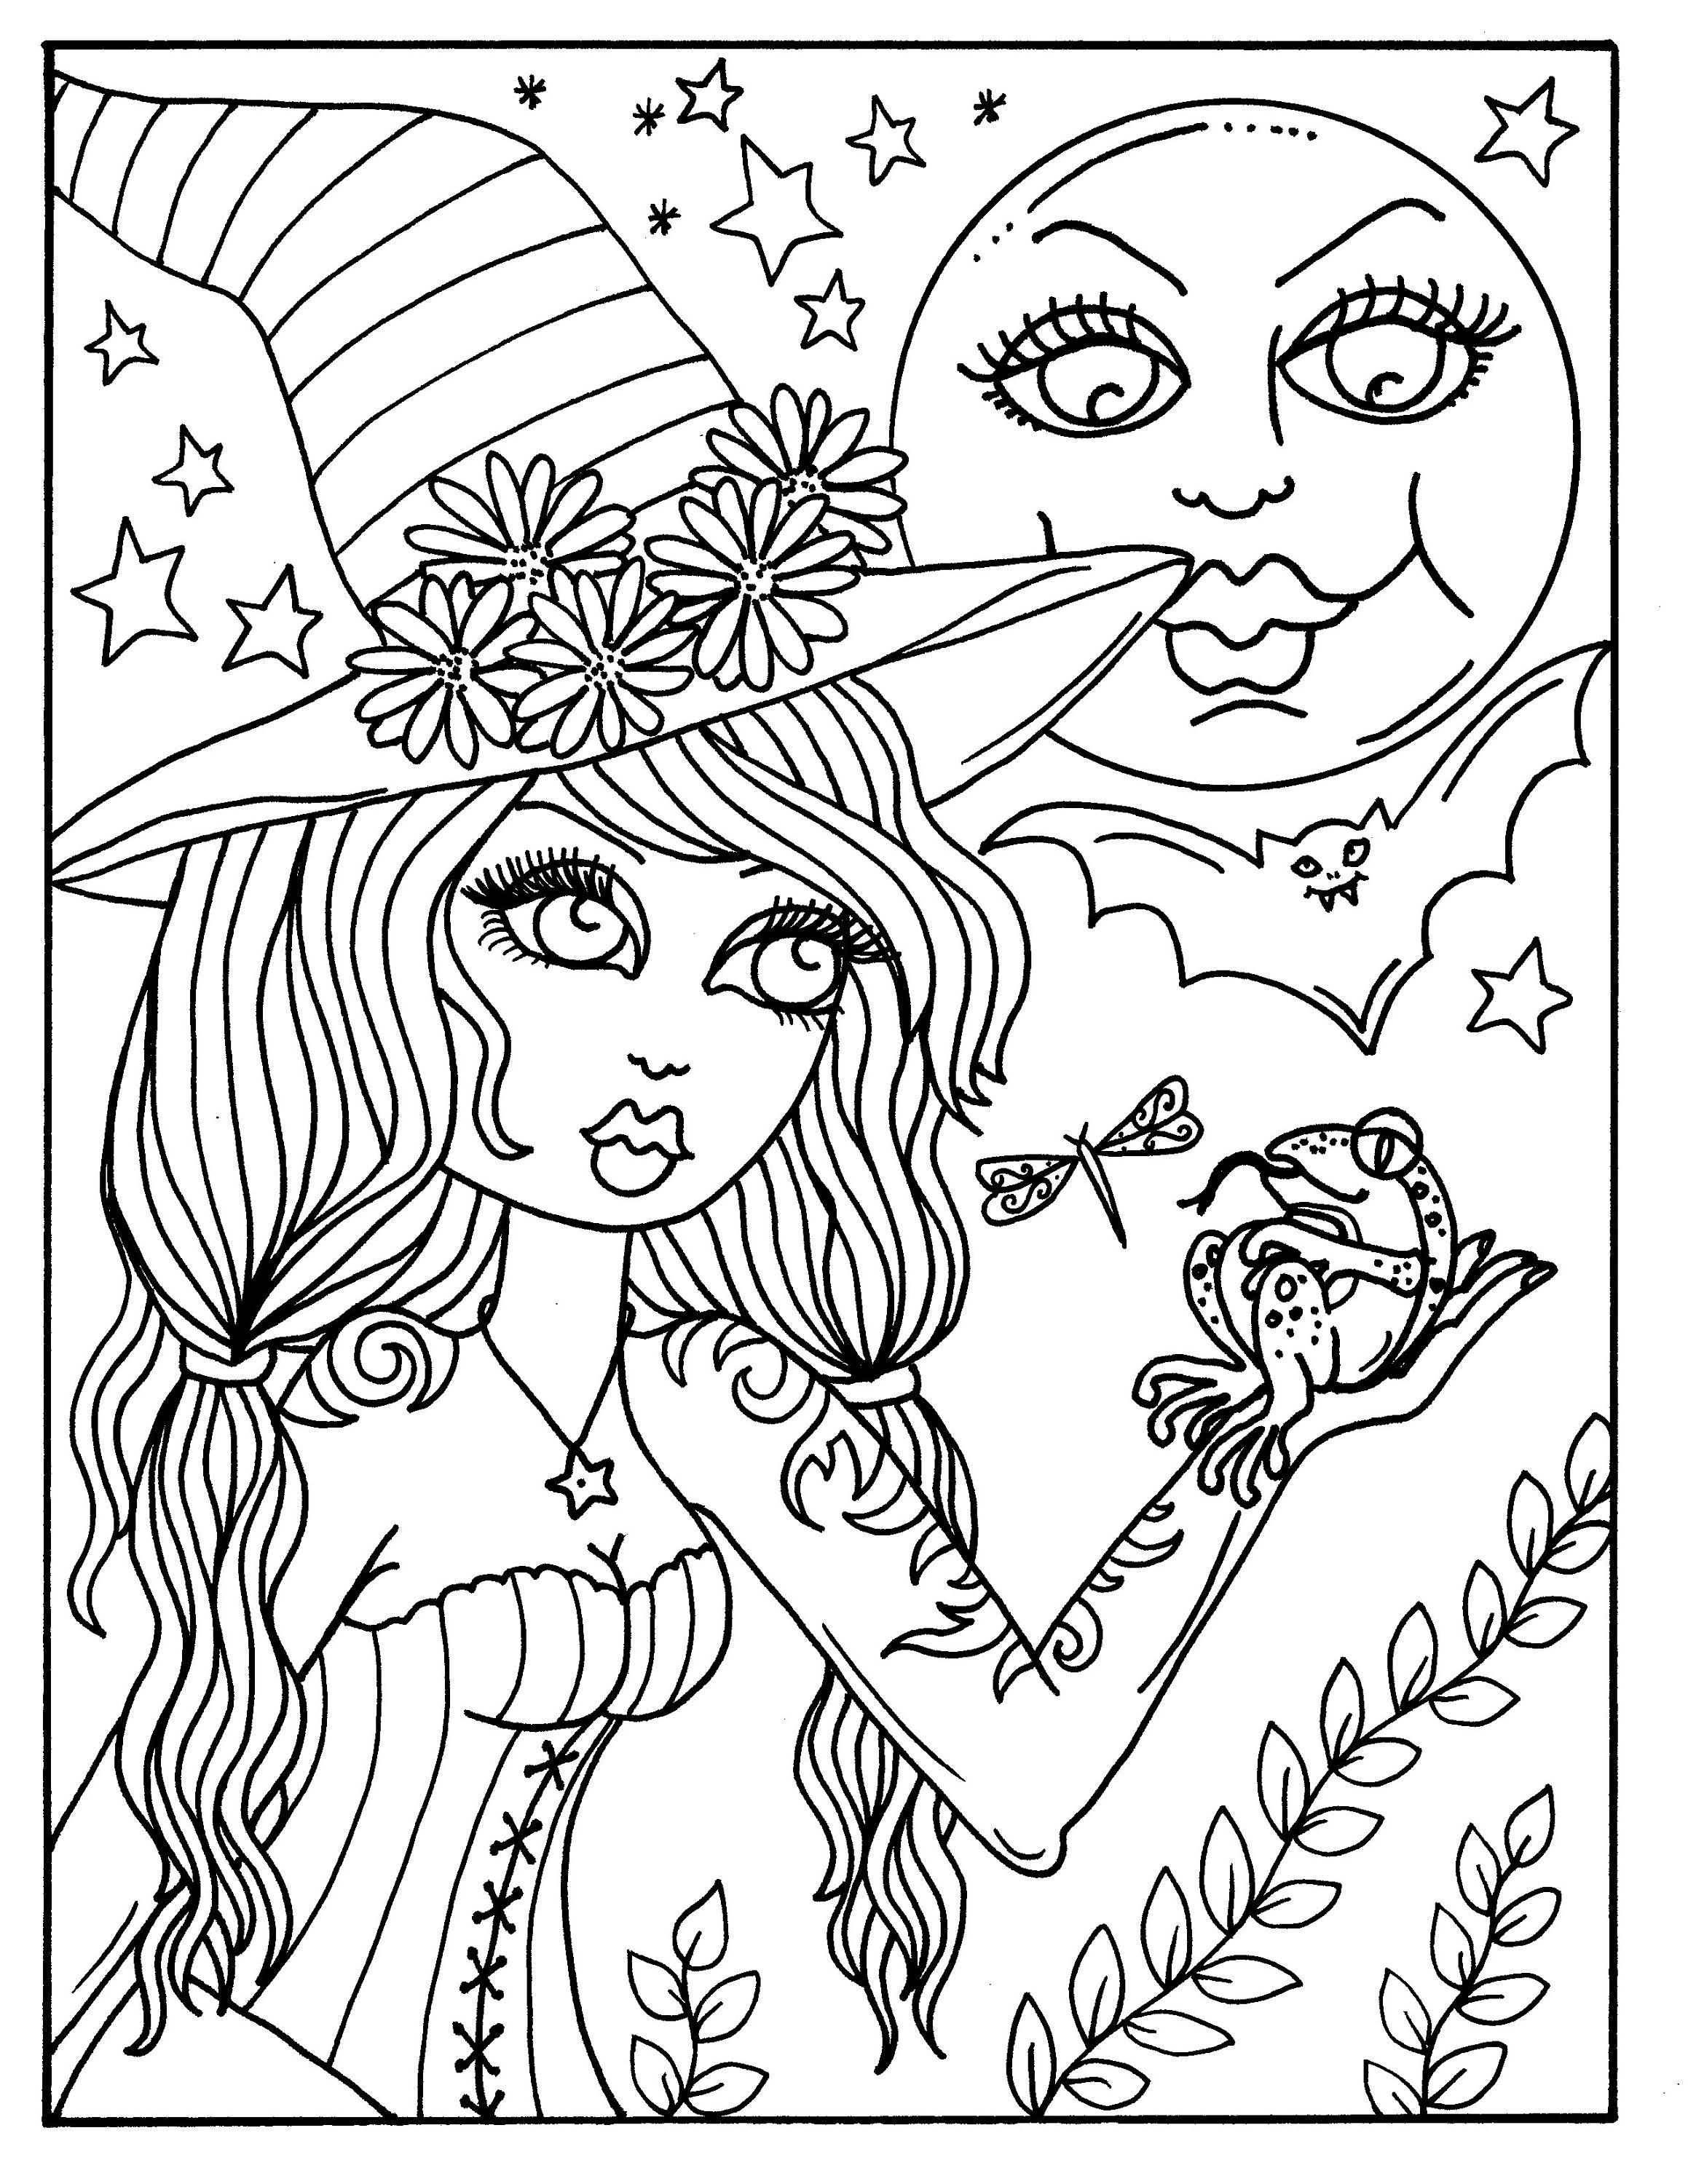 Hocus Pocus Witches Printable Coloring Pages For Adults Etsy Witch Coloring Pages Fairy Coloring Pages Fall Coloring Pages